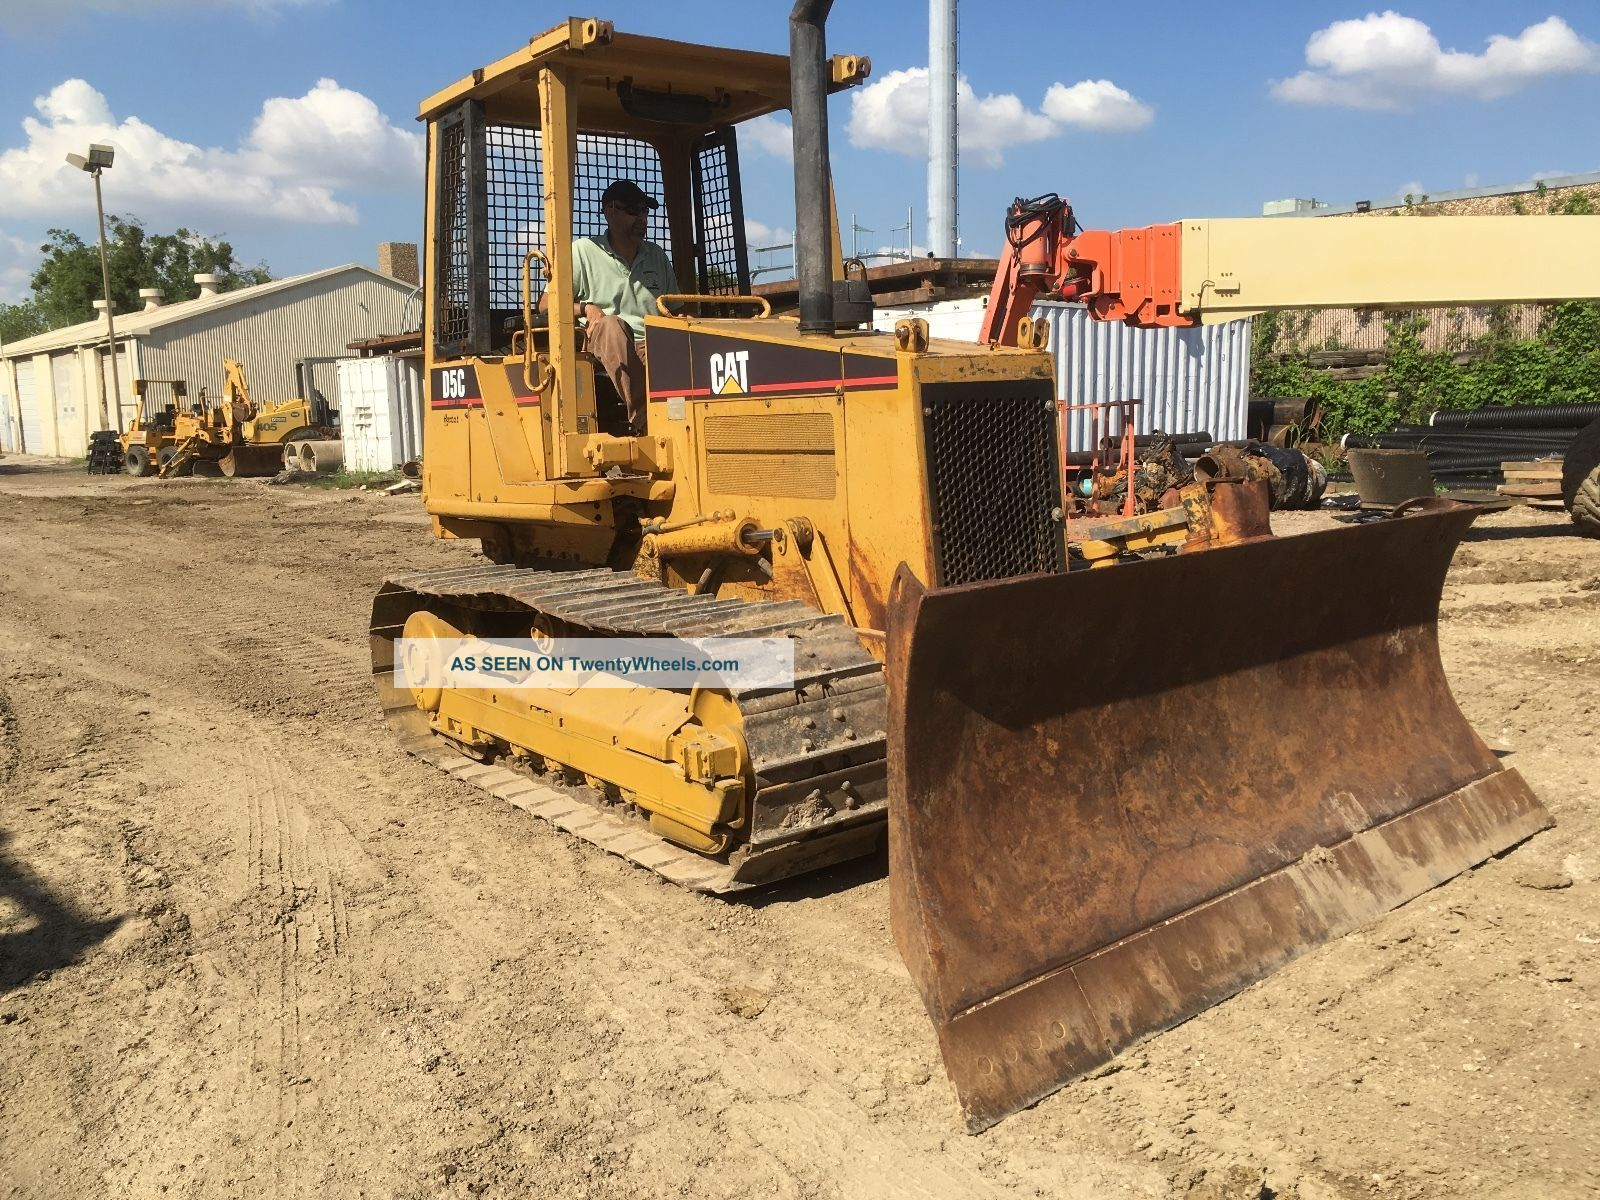 1997 Caterpillar D5c Series Iii Crawler Dozer 3859 Hrs